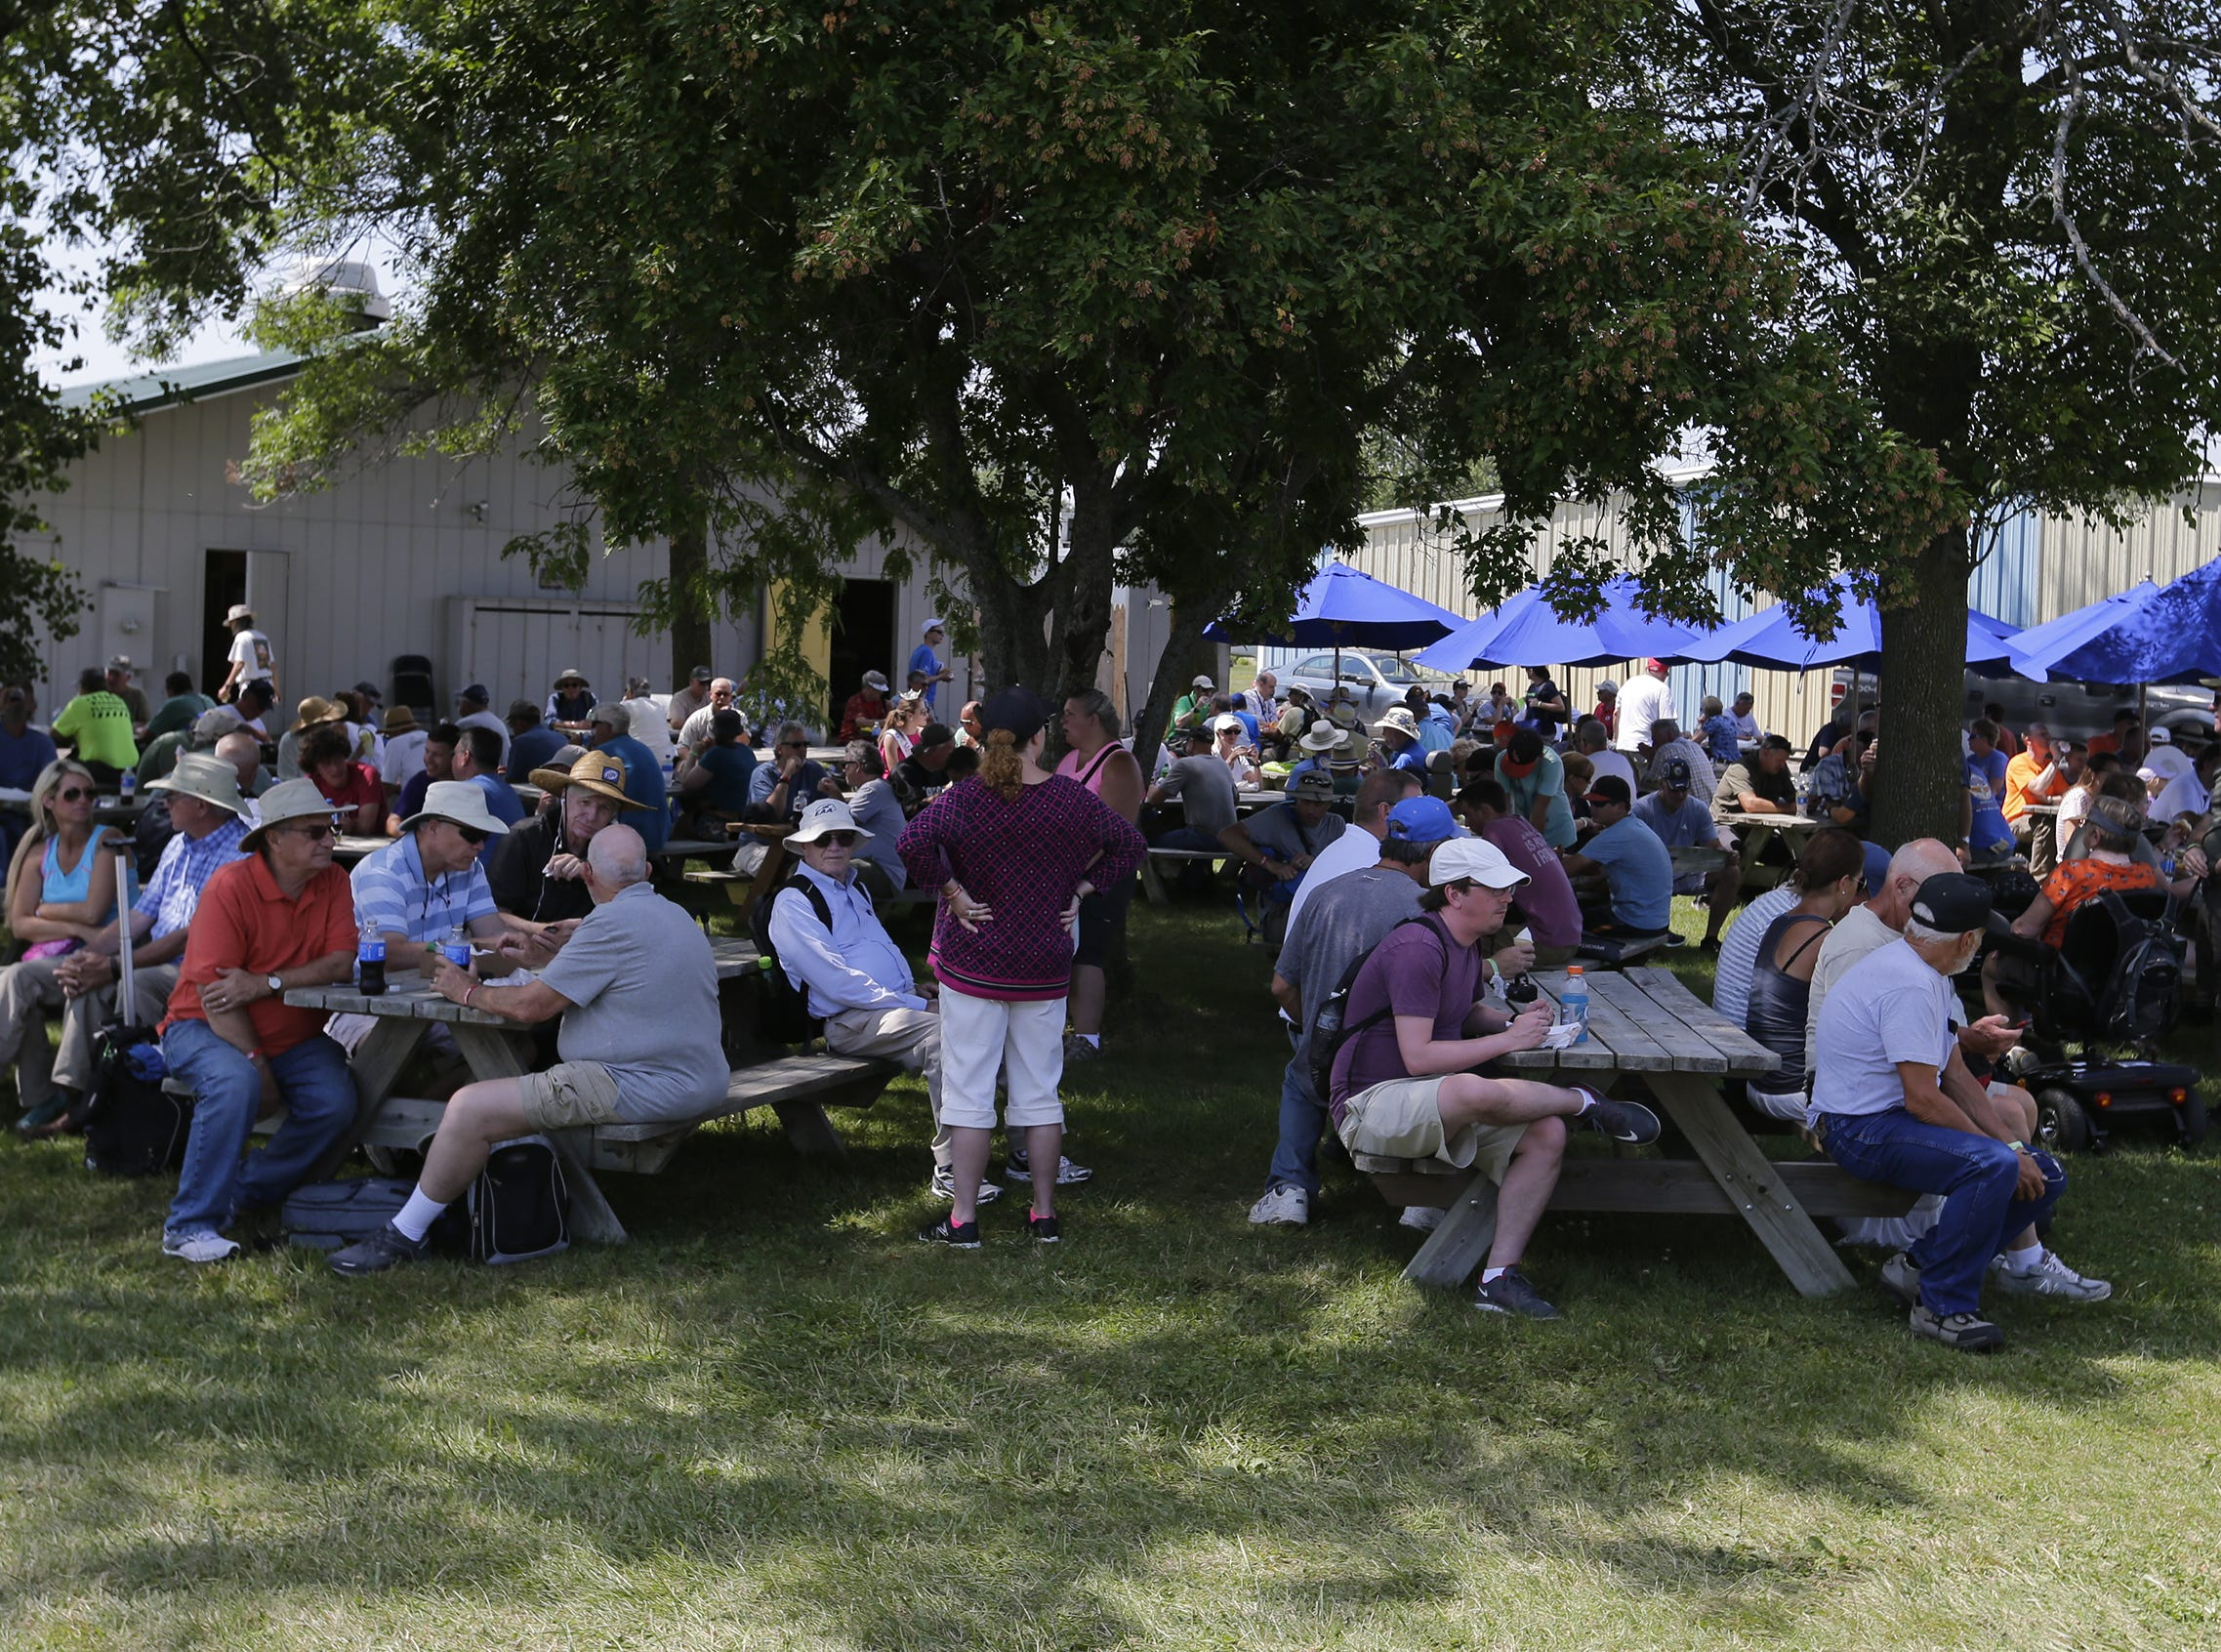 Shade was at a premium during the lunch hour, Tuesday, July 24, 2018, in Oshkosh, Wis.  The 66th annual Experimental Aircraft Association Fly-In Convention, AirVenture 2018 draws over 500,000 people annually to the area.  The convention runs through July 29. Joe Sienkiewicz/USA Today NETWORK-Wisconsin